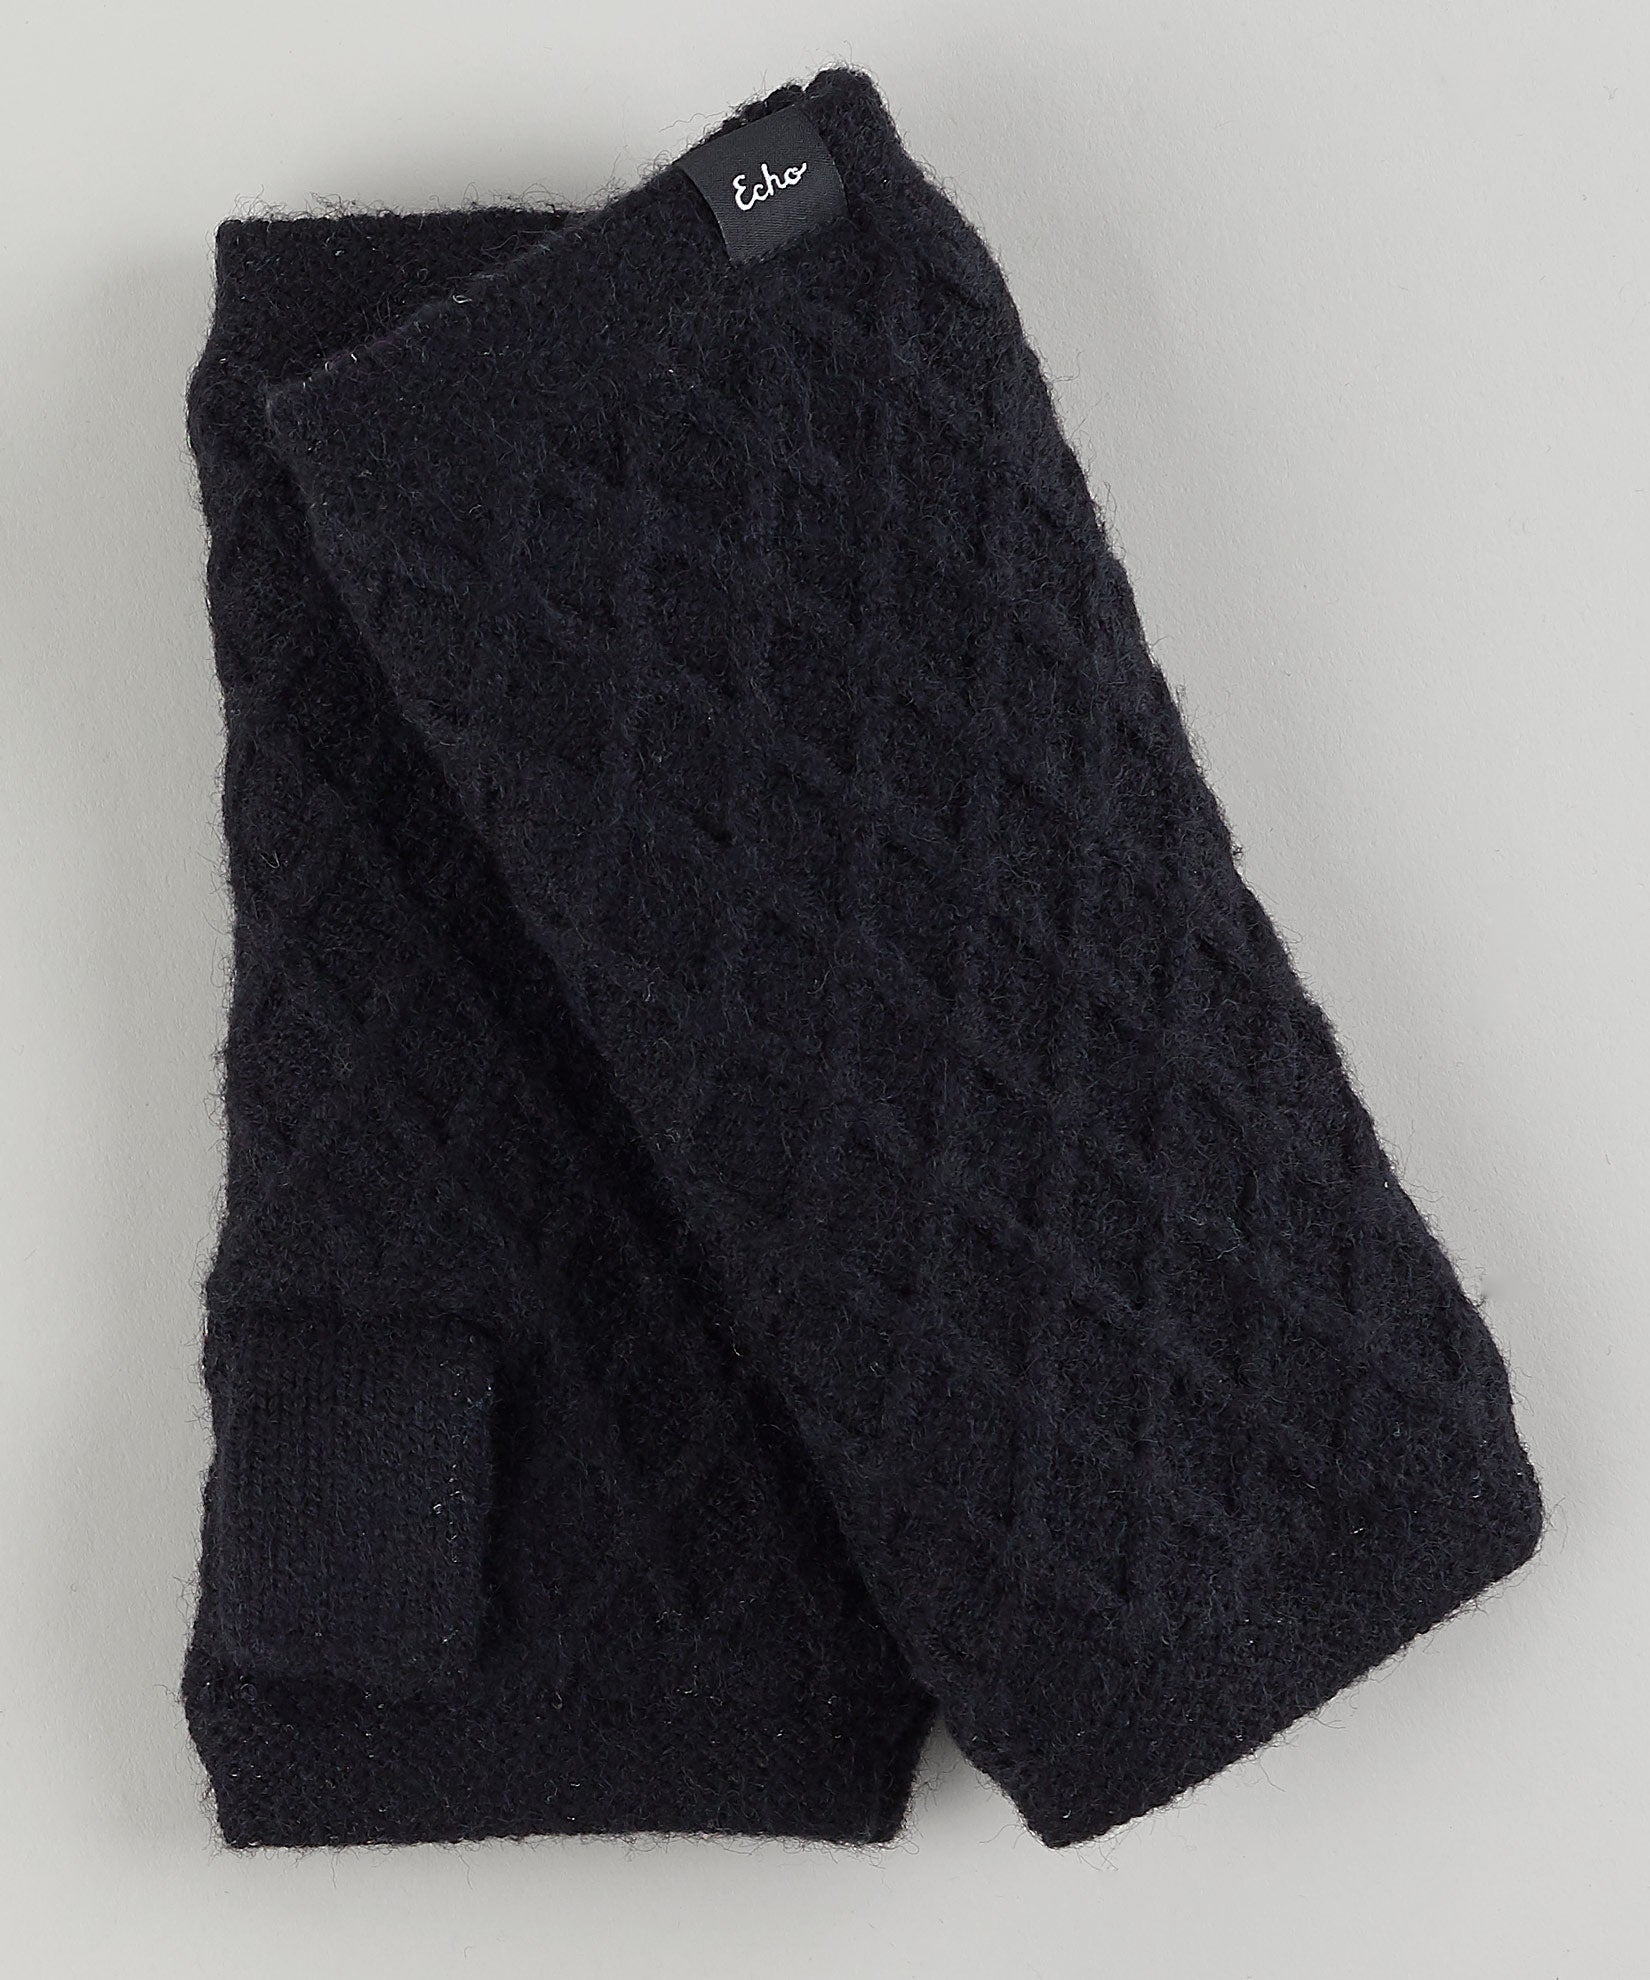 Echo Black - Diamond Fingerless Glove